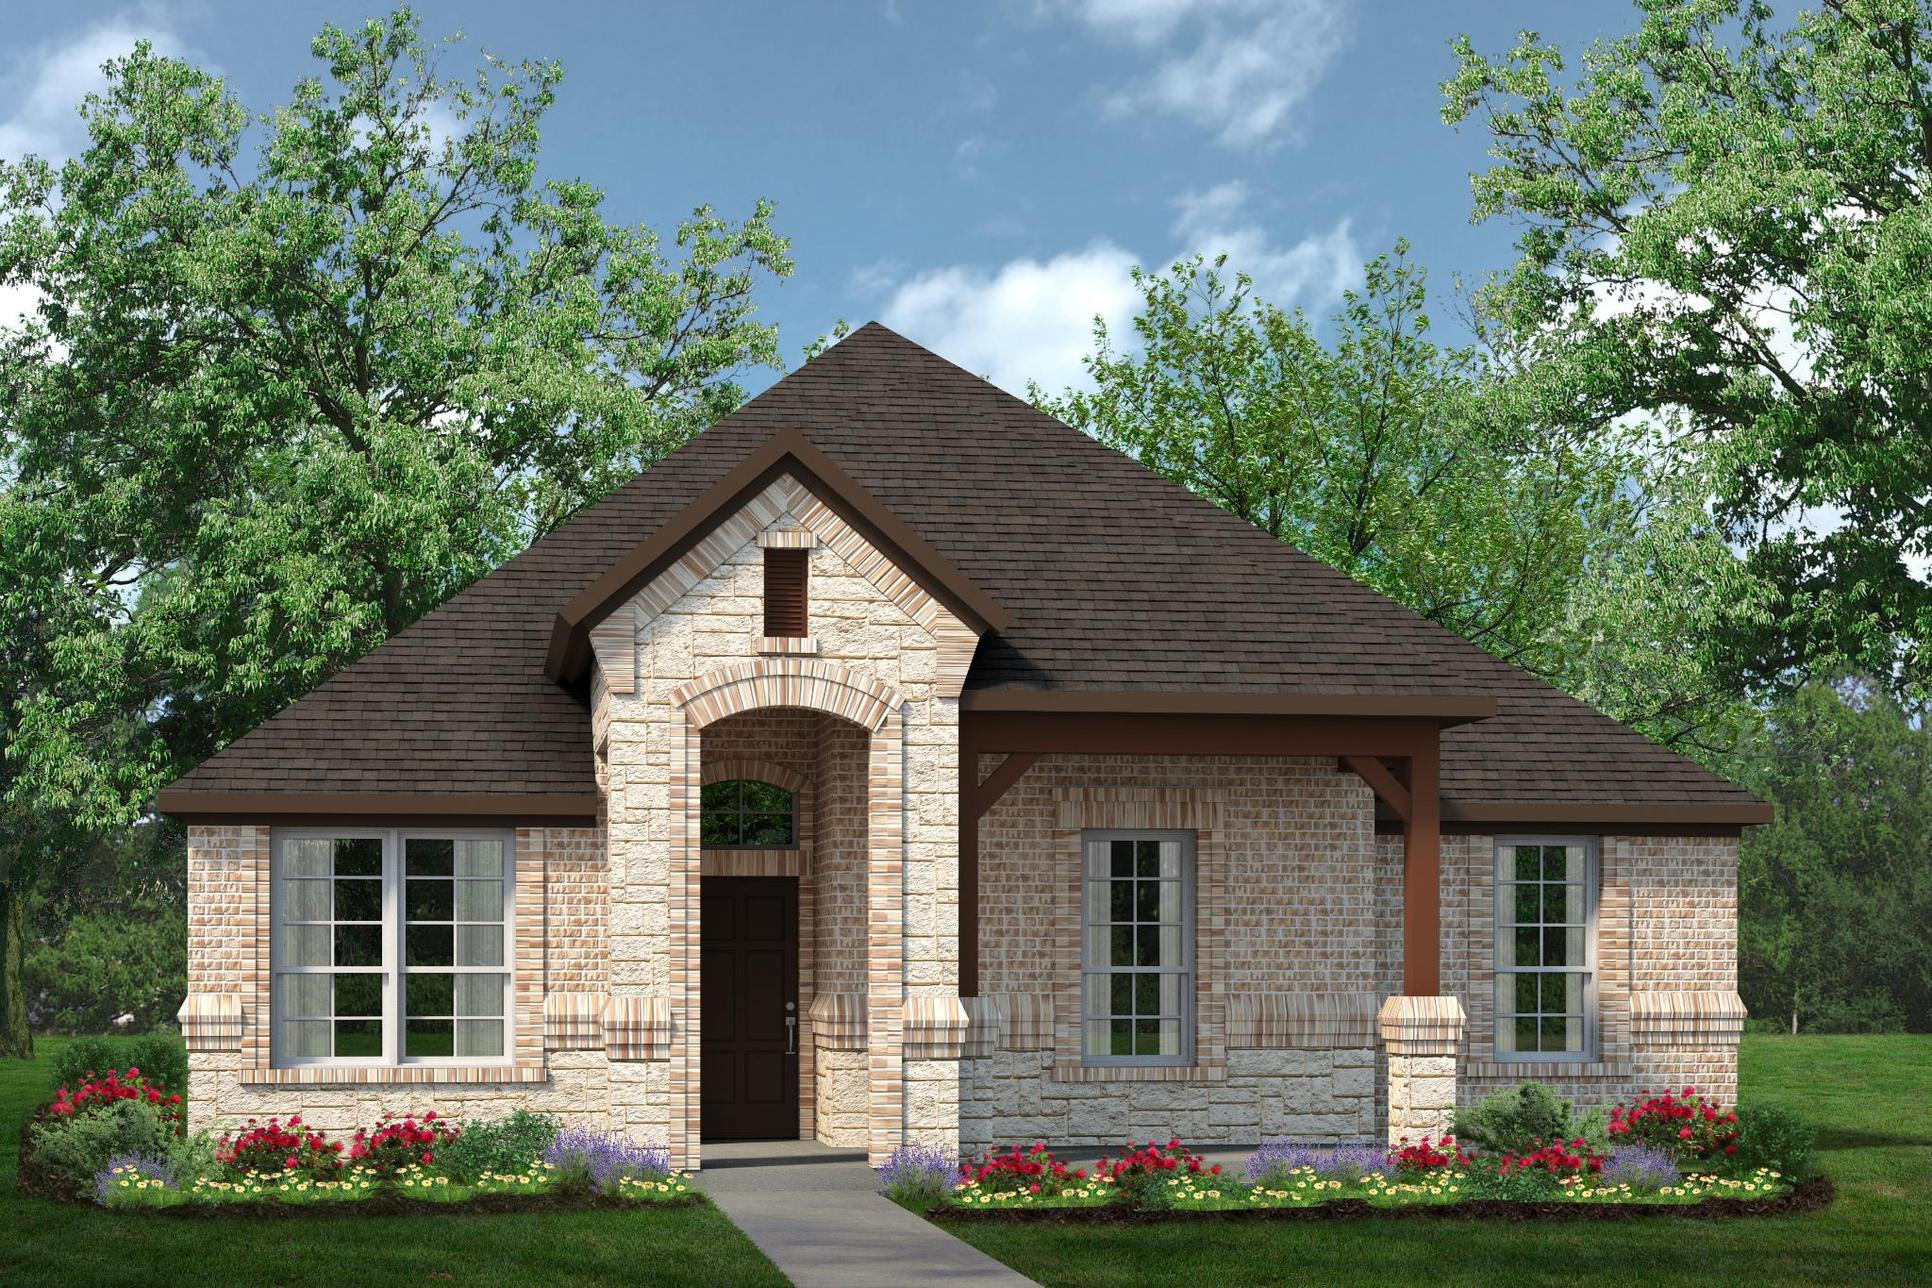 Exterior:2129 D with Stone